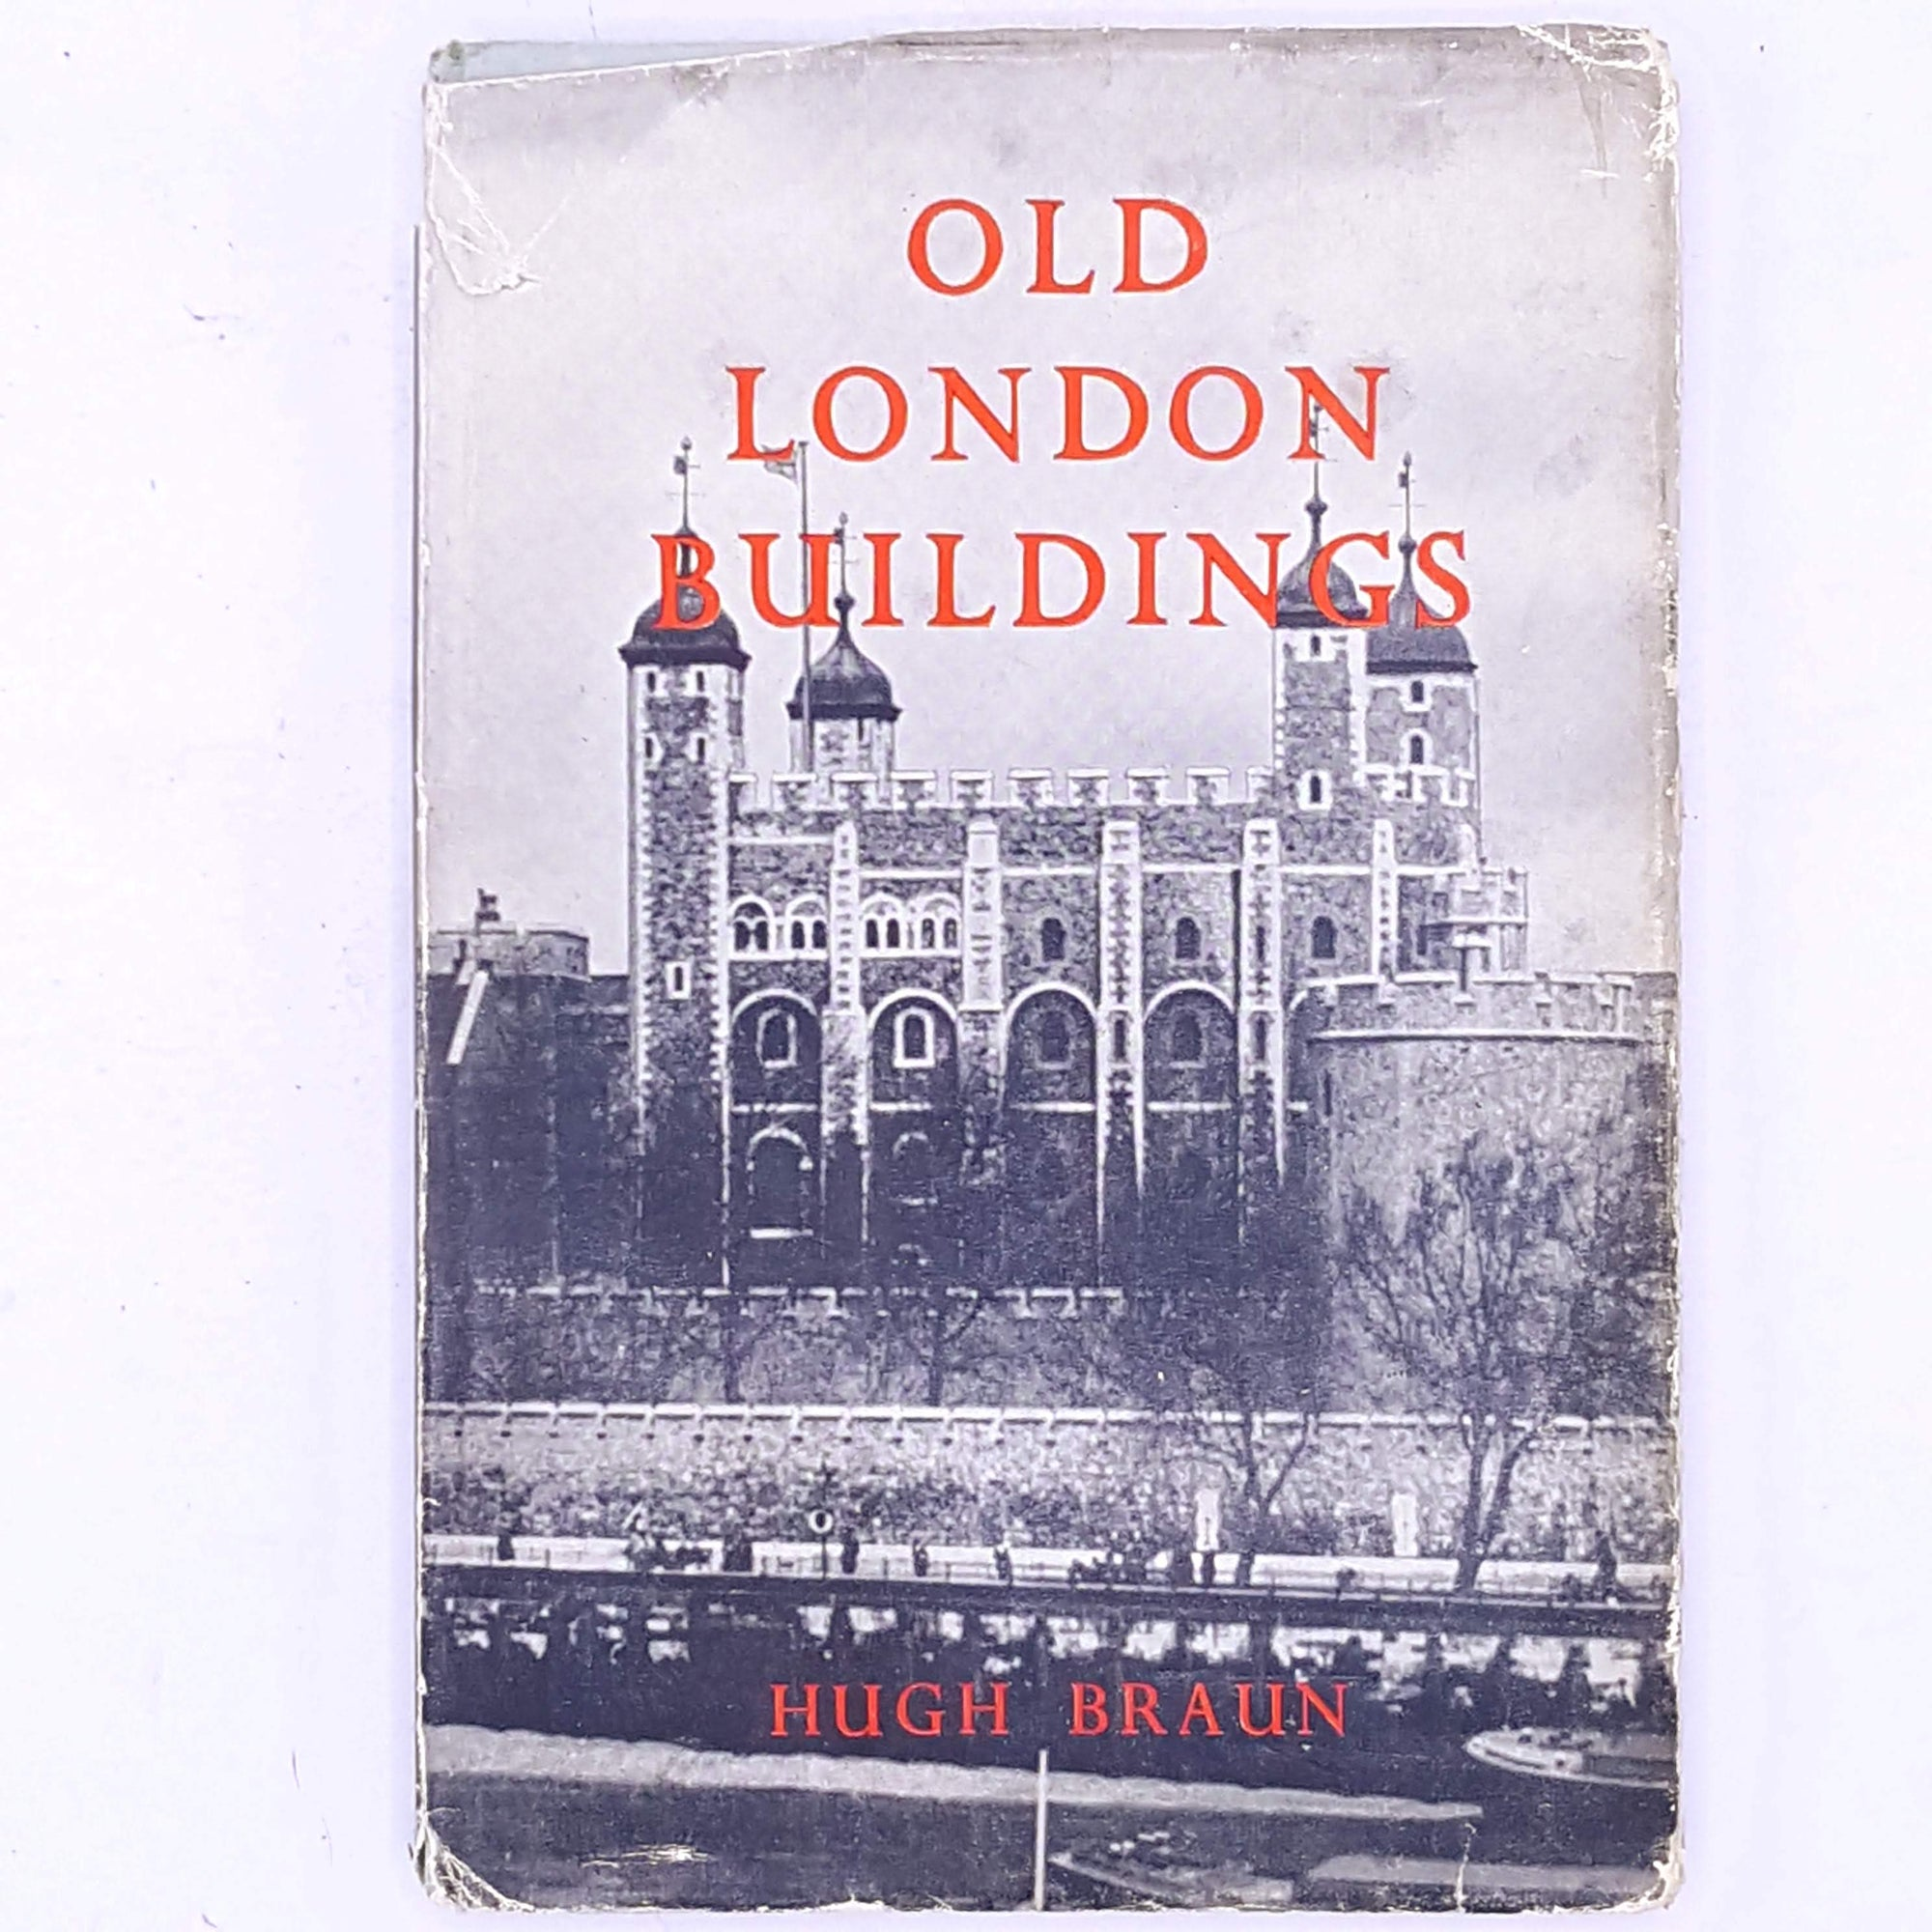 Old London Buildings Hugh Braun